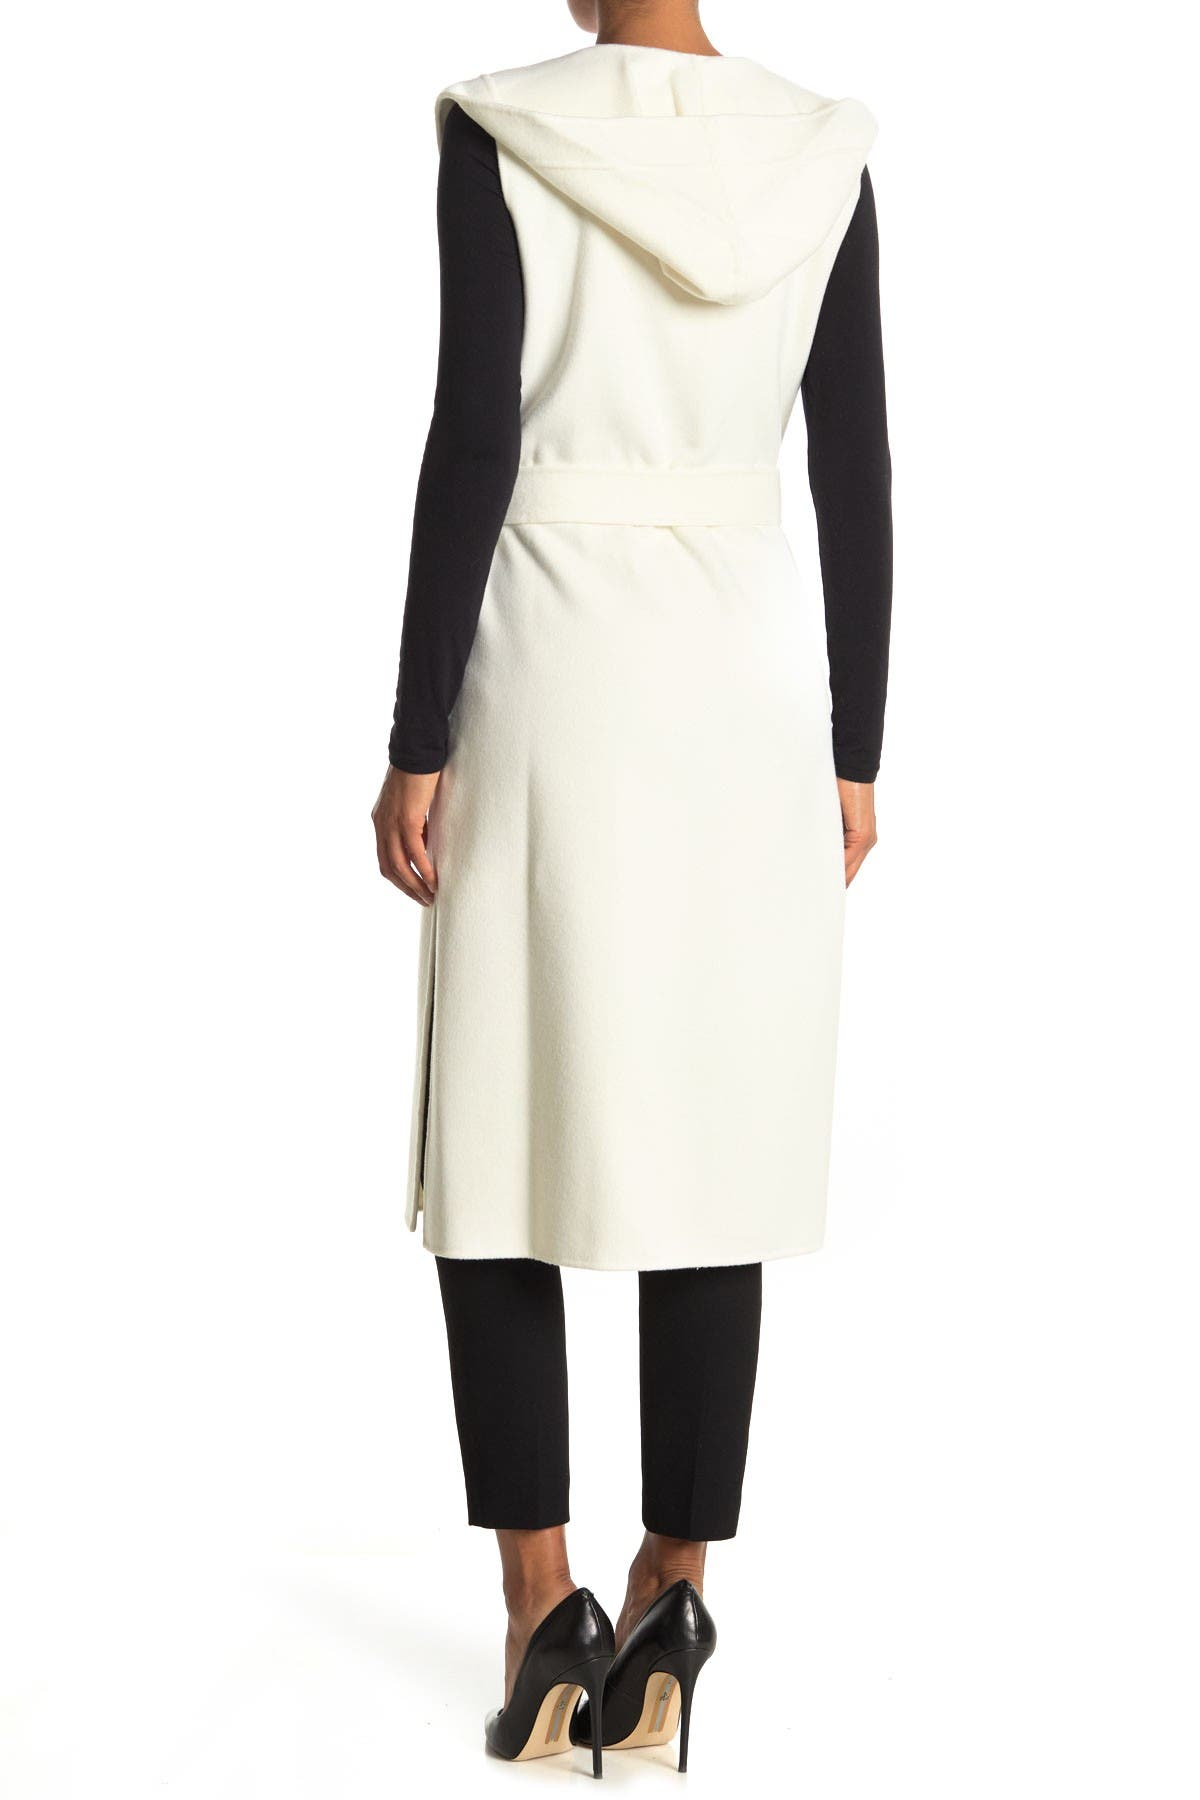 Image of BCBGMAXAZRIA Belted Hooded Wool Blend Vest